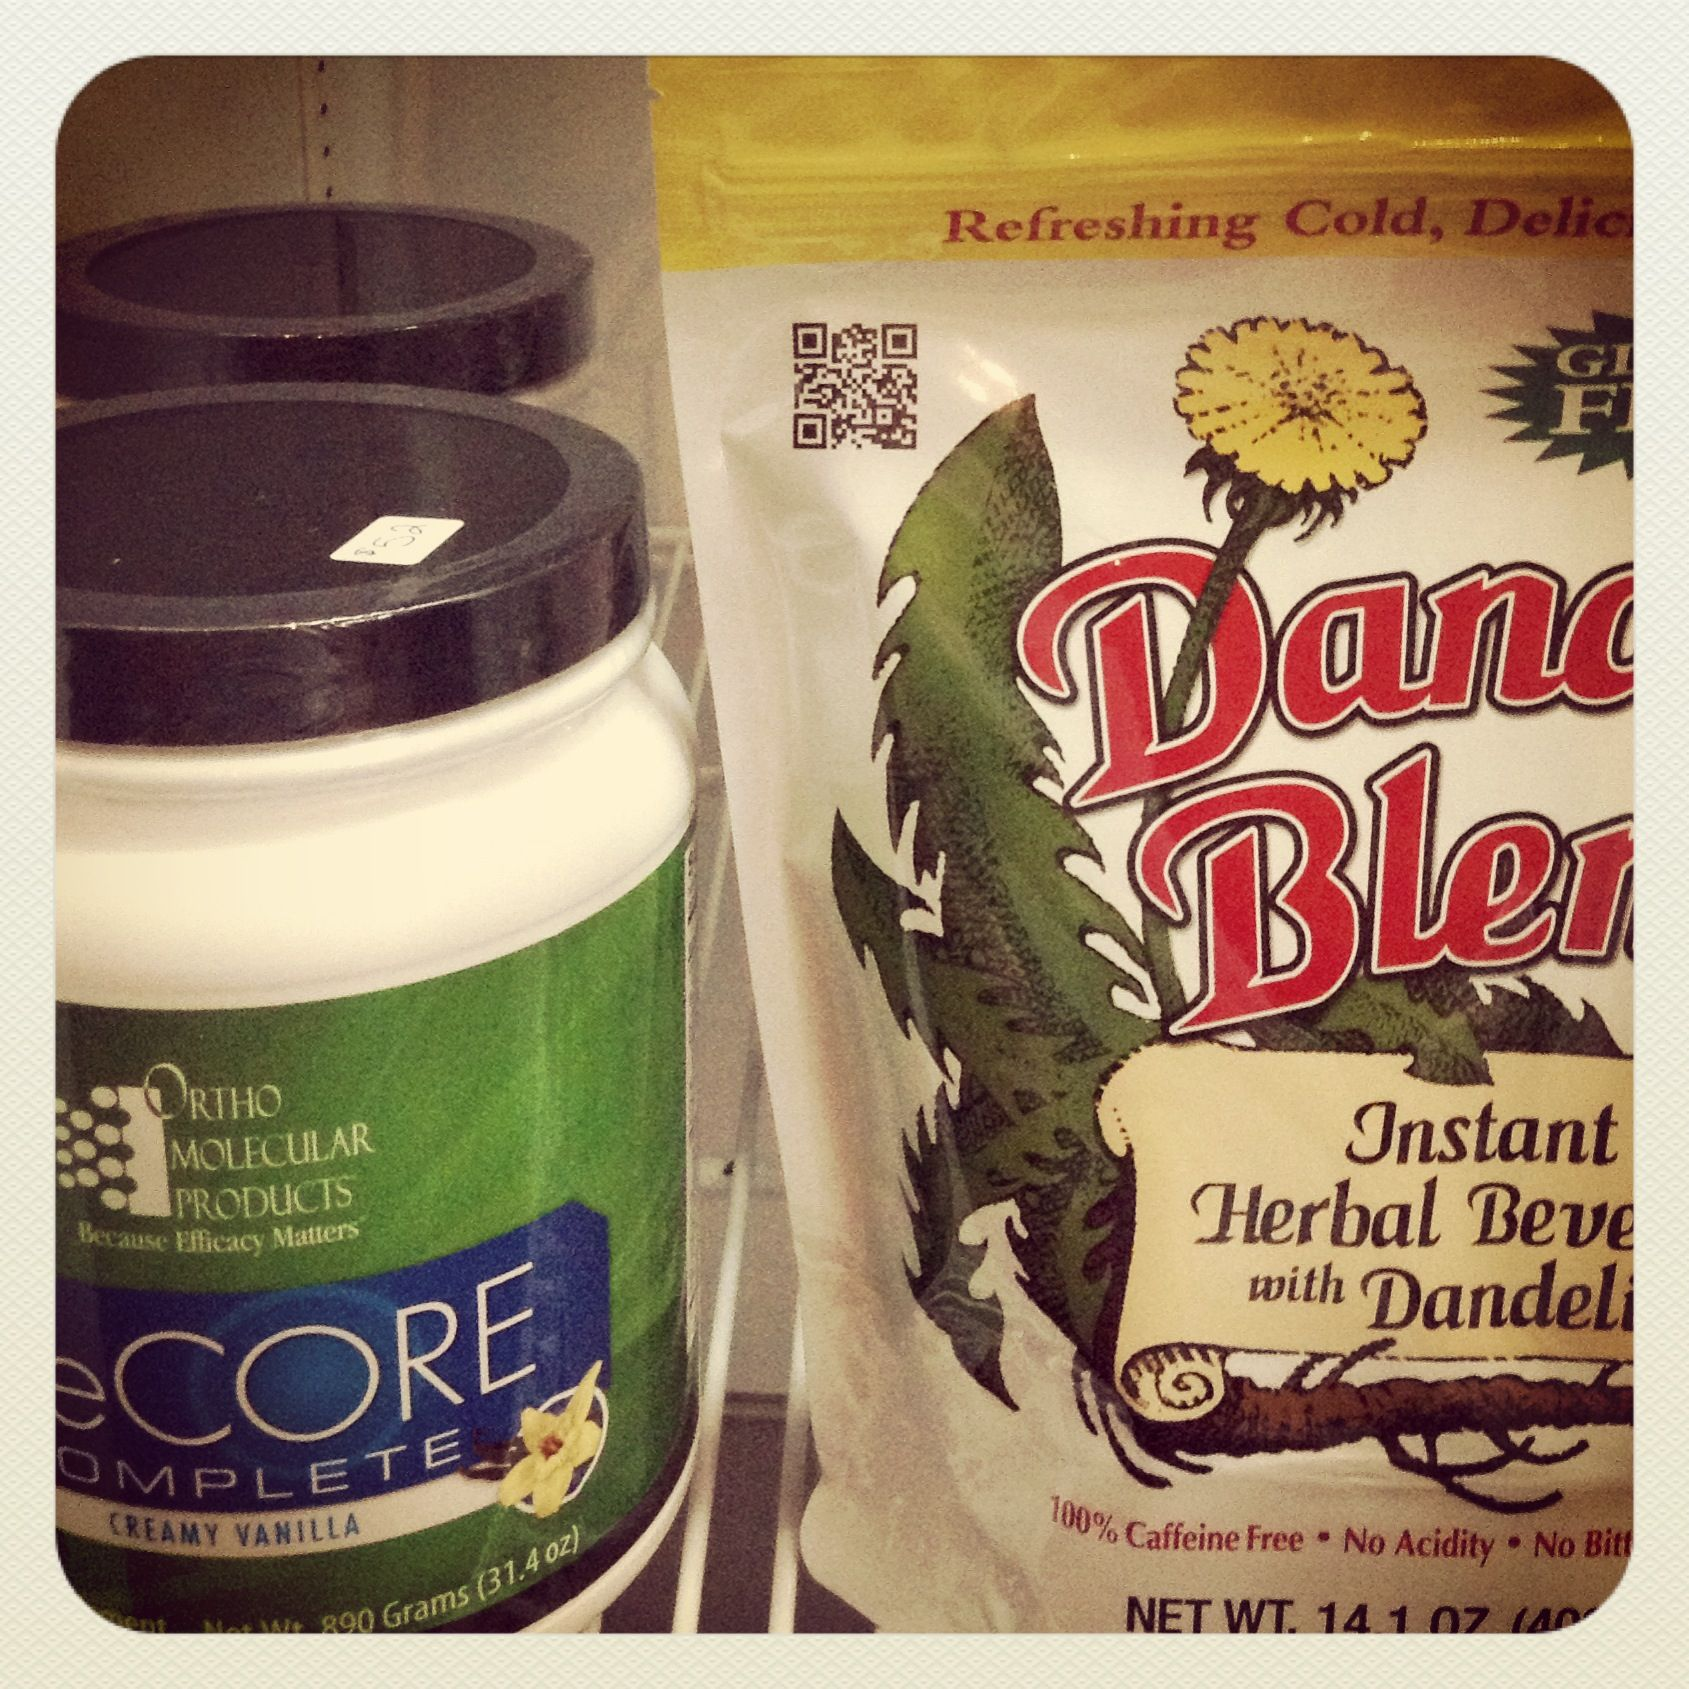 We are now selling vegan protein powder and Dandy Blend at our midtown location